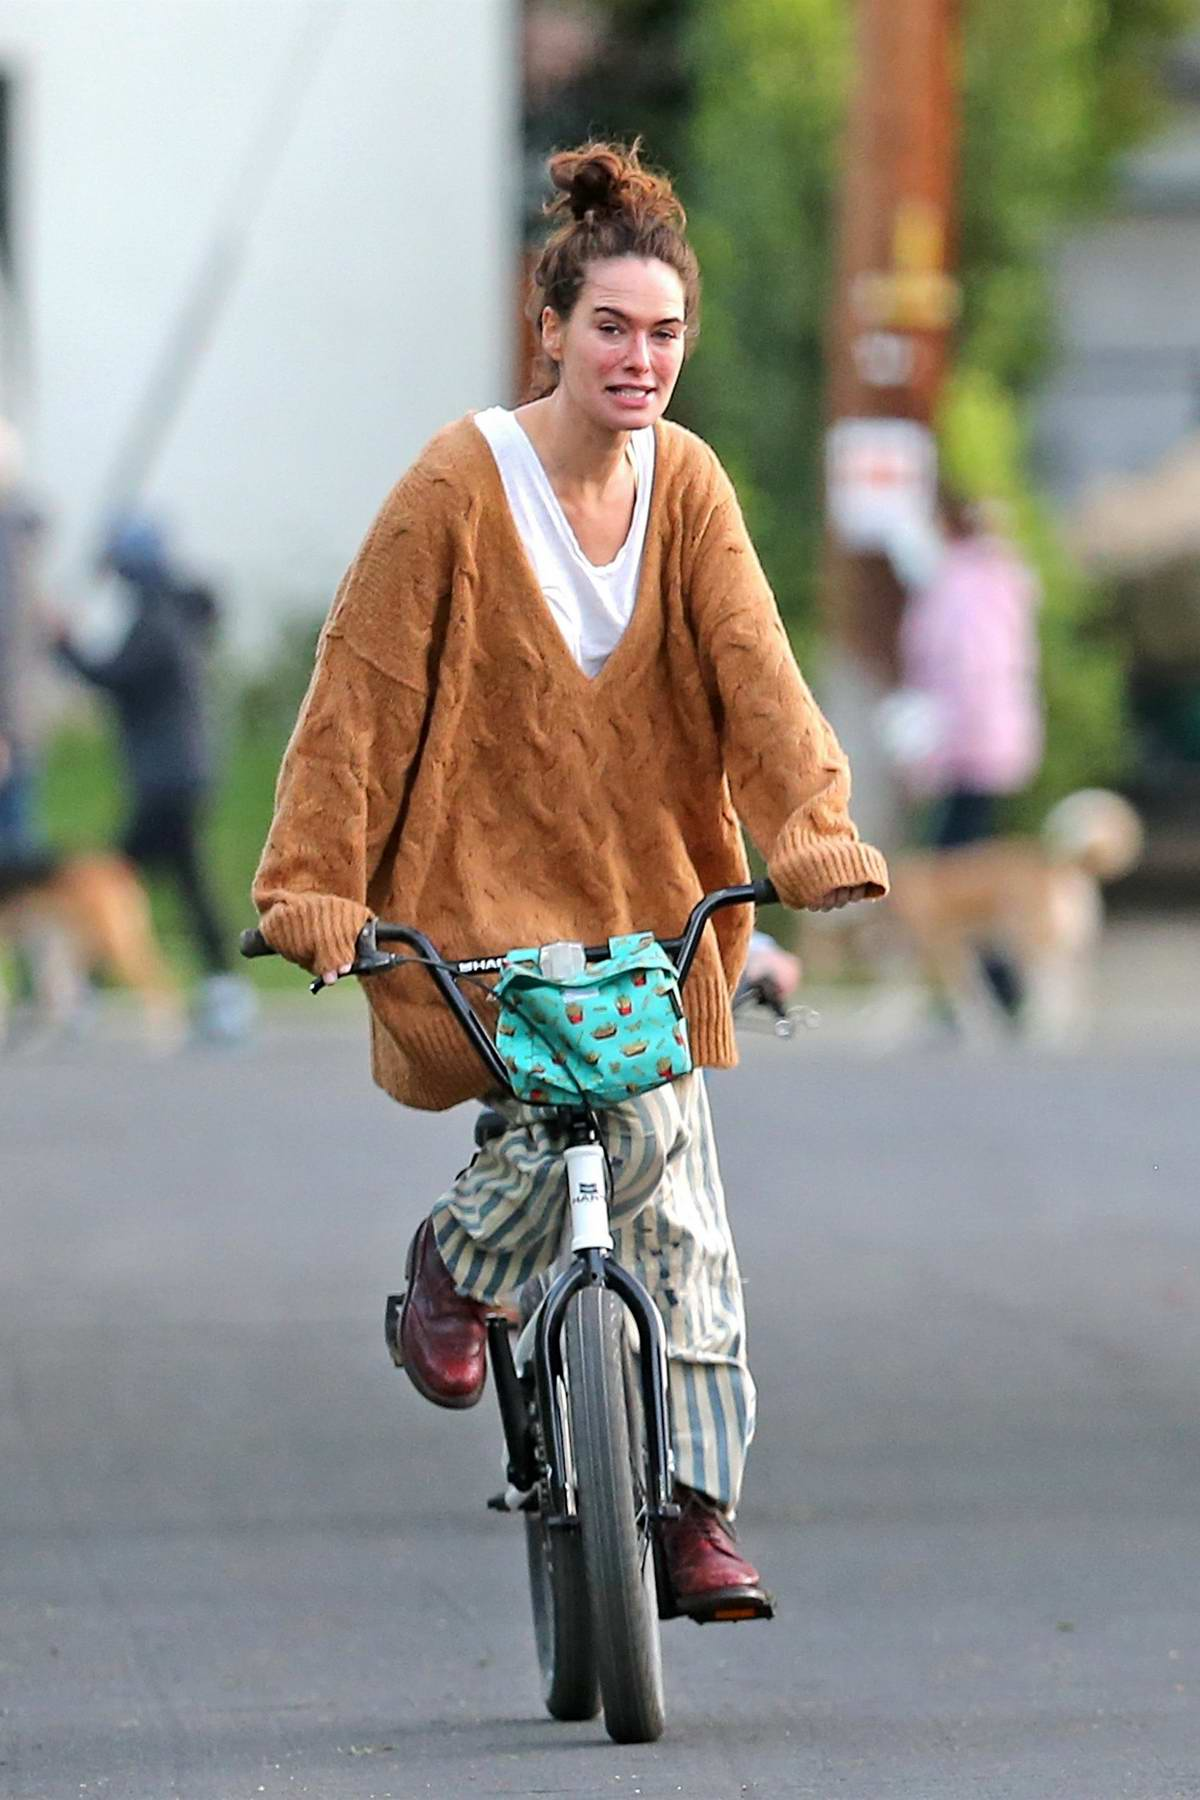 Lena Headey is all smiles riding a bicycle around the neighborhood in Los Angeles